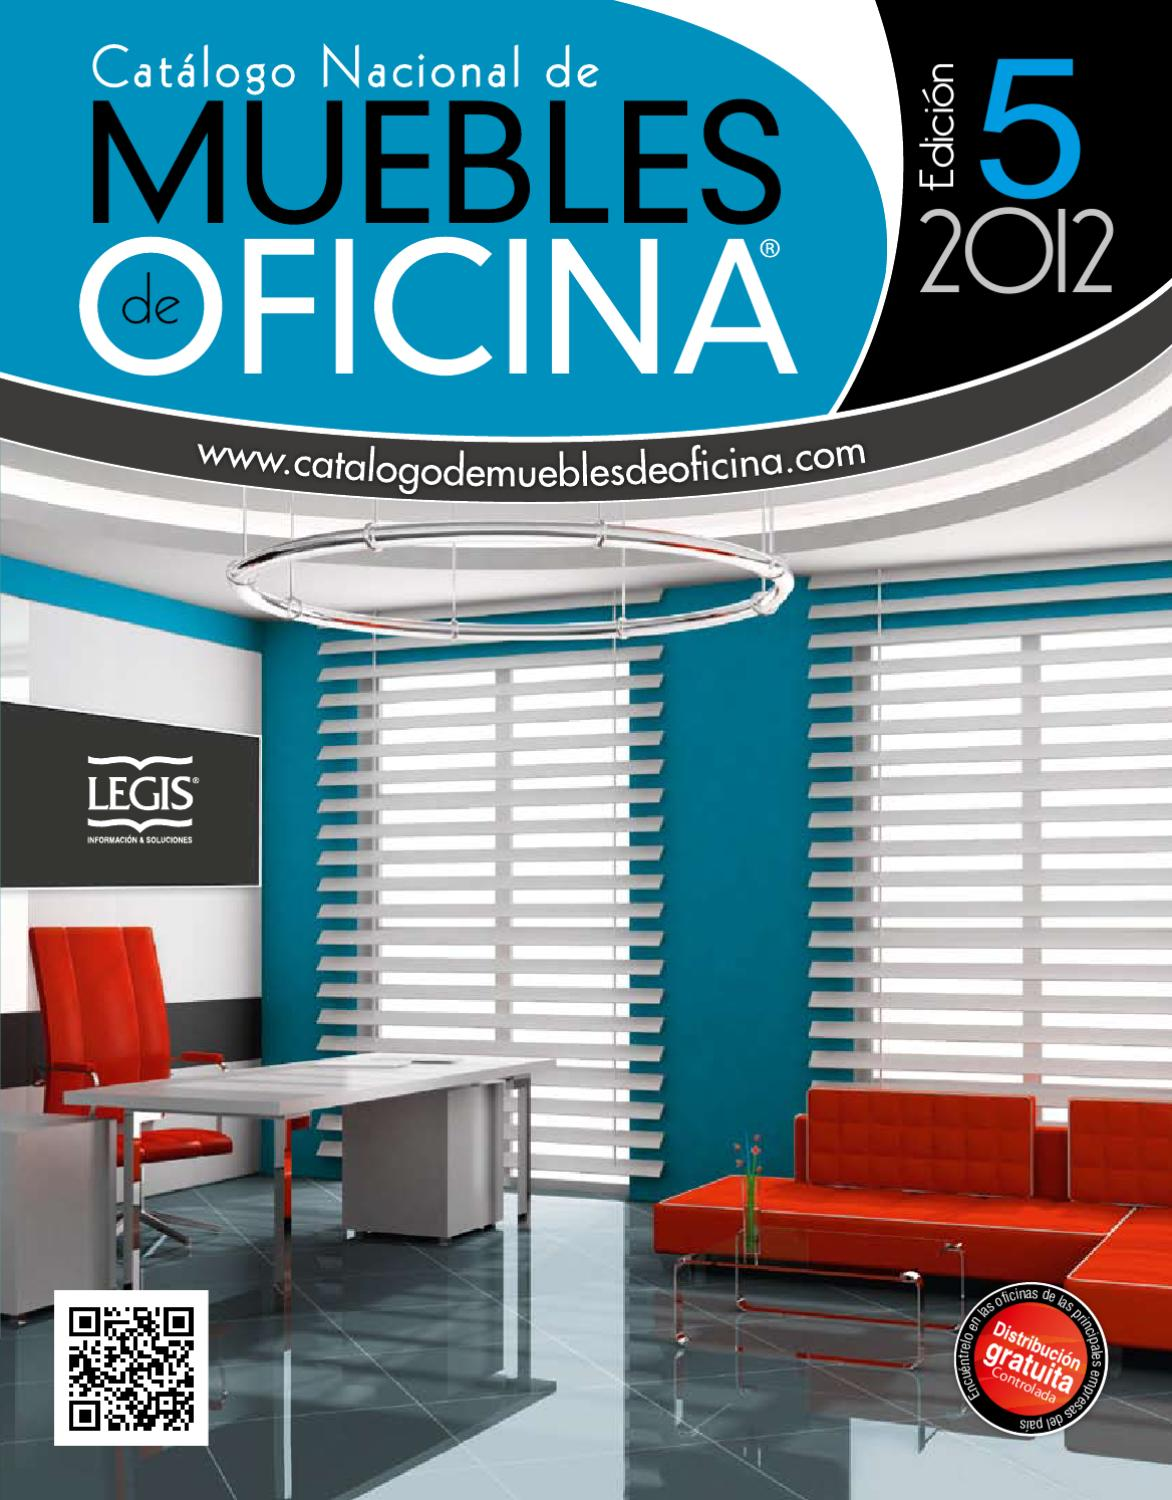 Cat logo nacional de muebles de oficina edici n 5 by legis for Catalogo muebles oficina